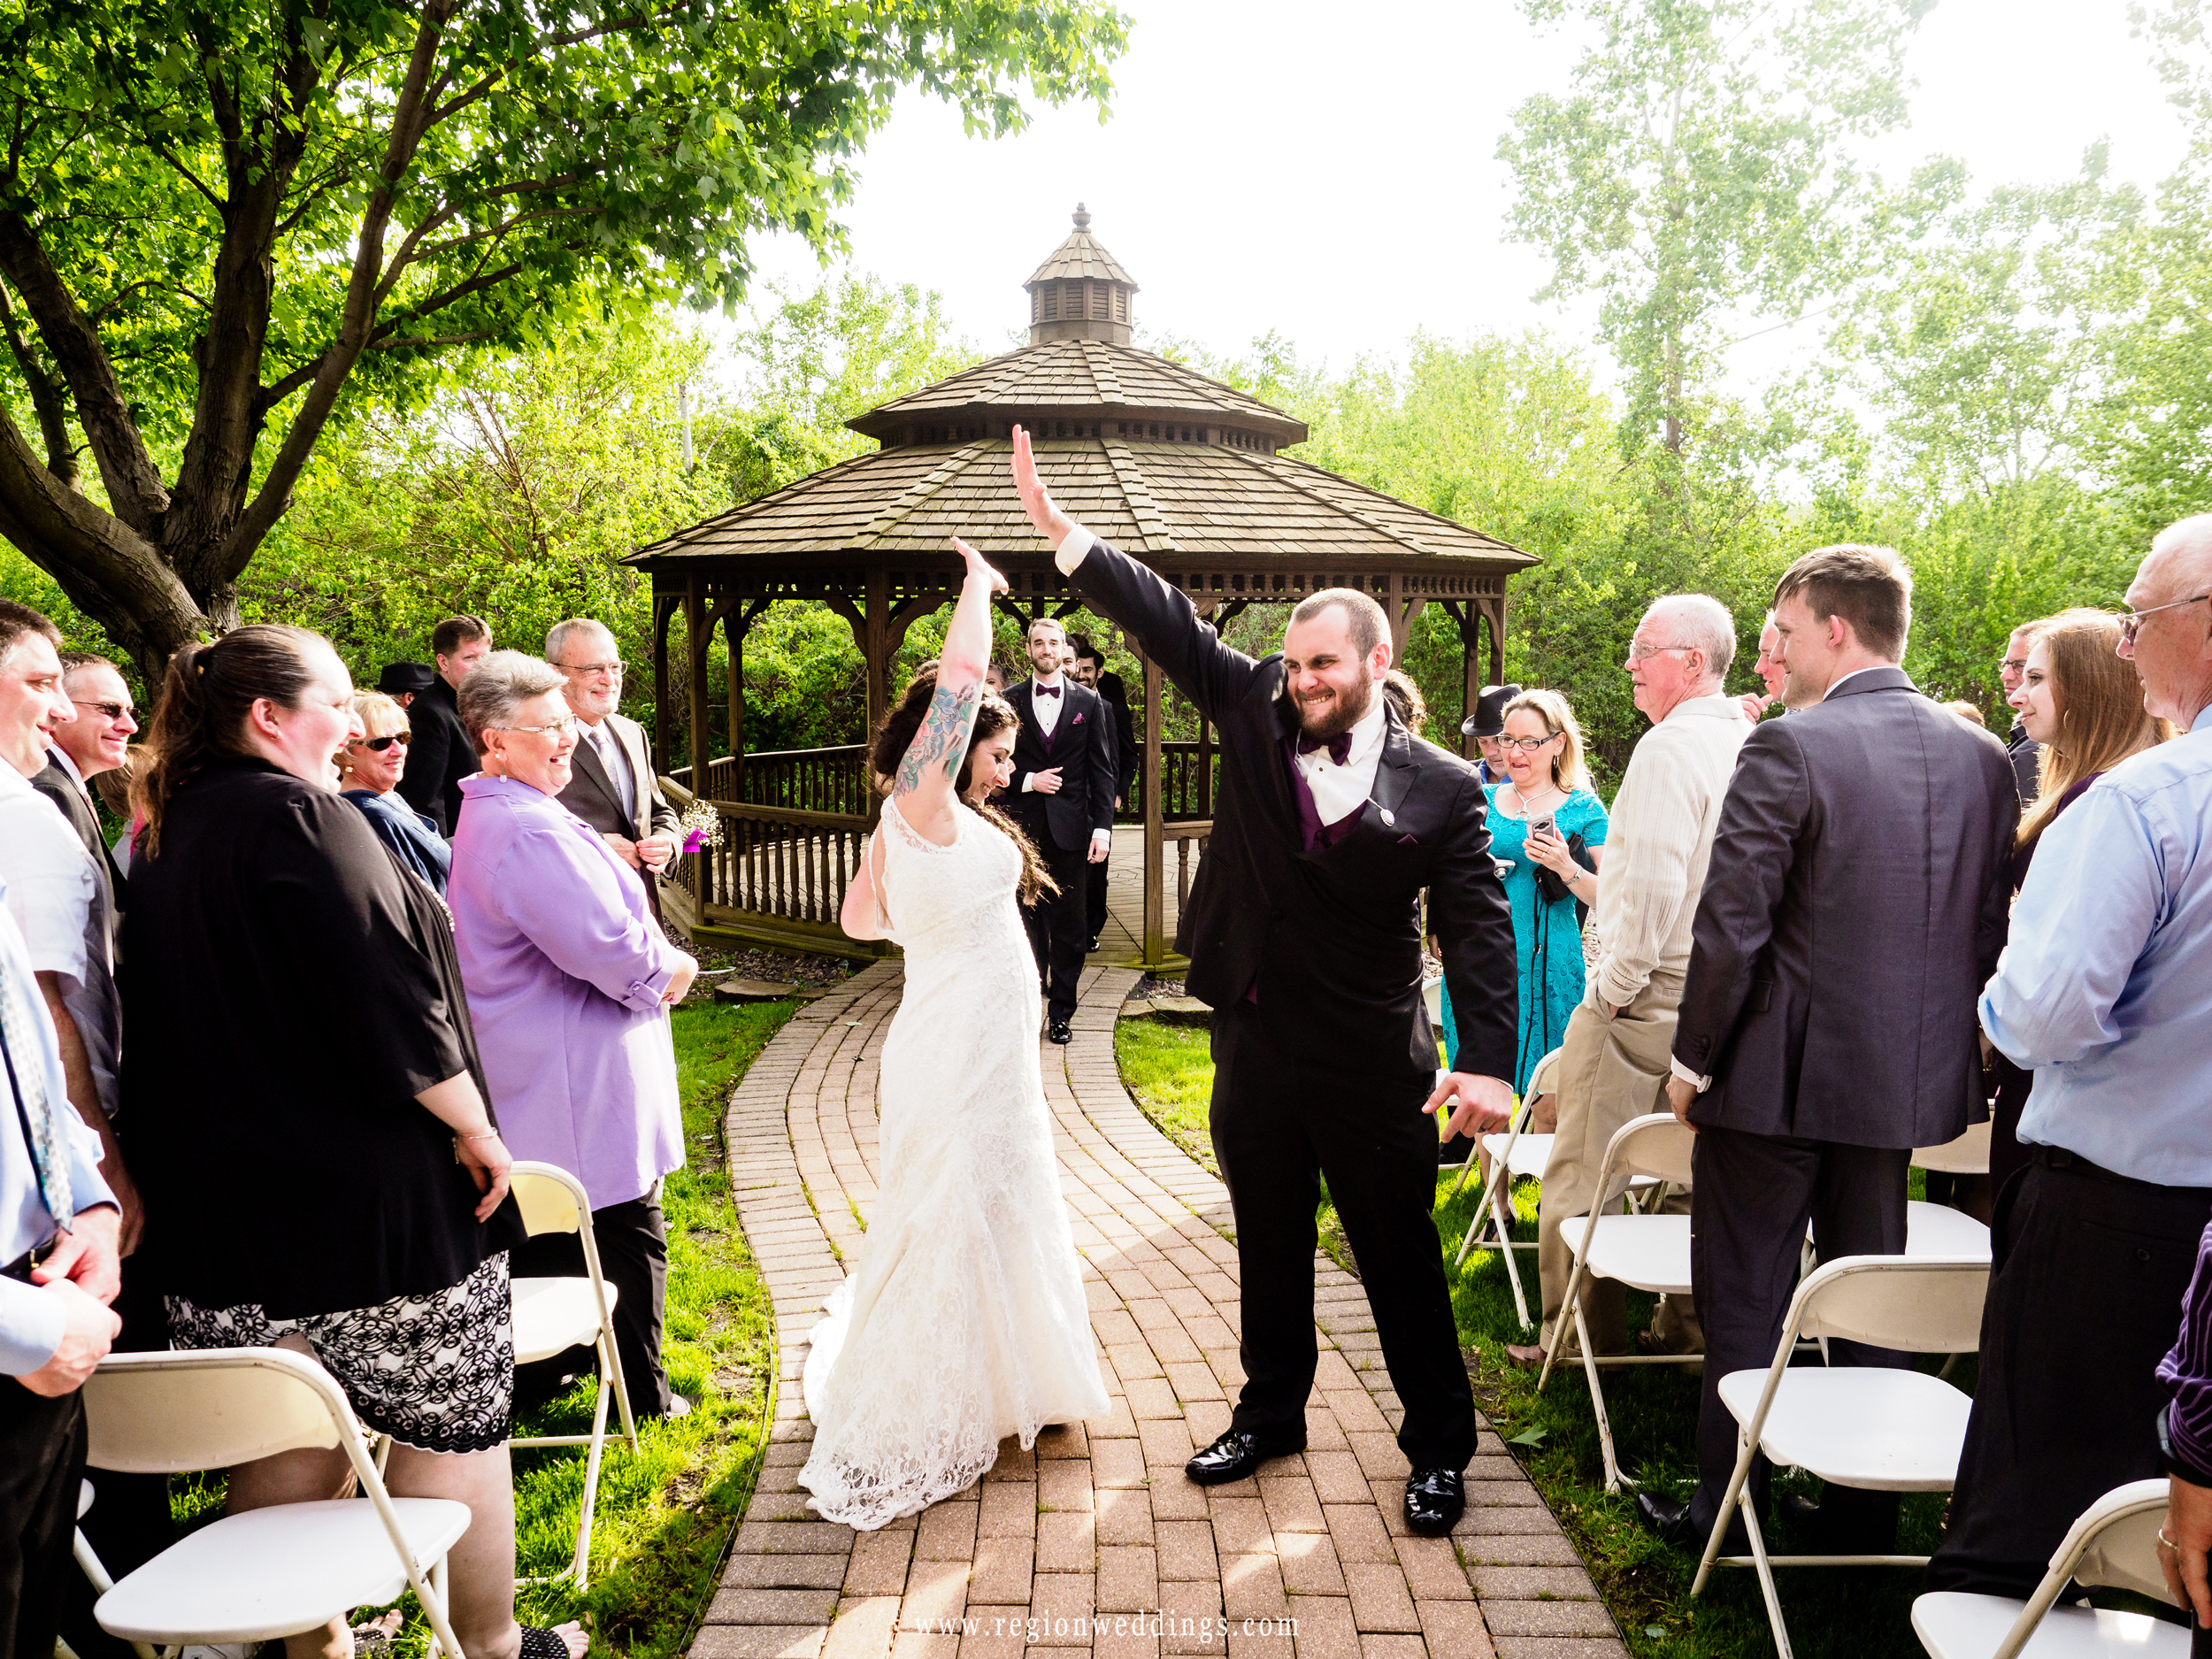 The bride and groom go for a high five as they exit the gazebo at Villa Cesare.